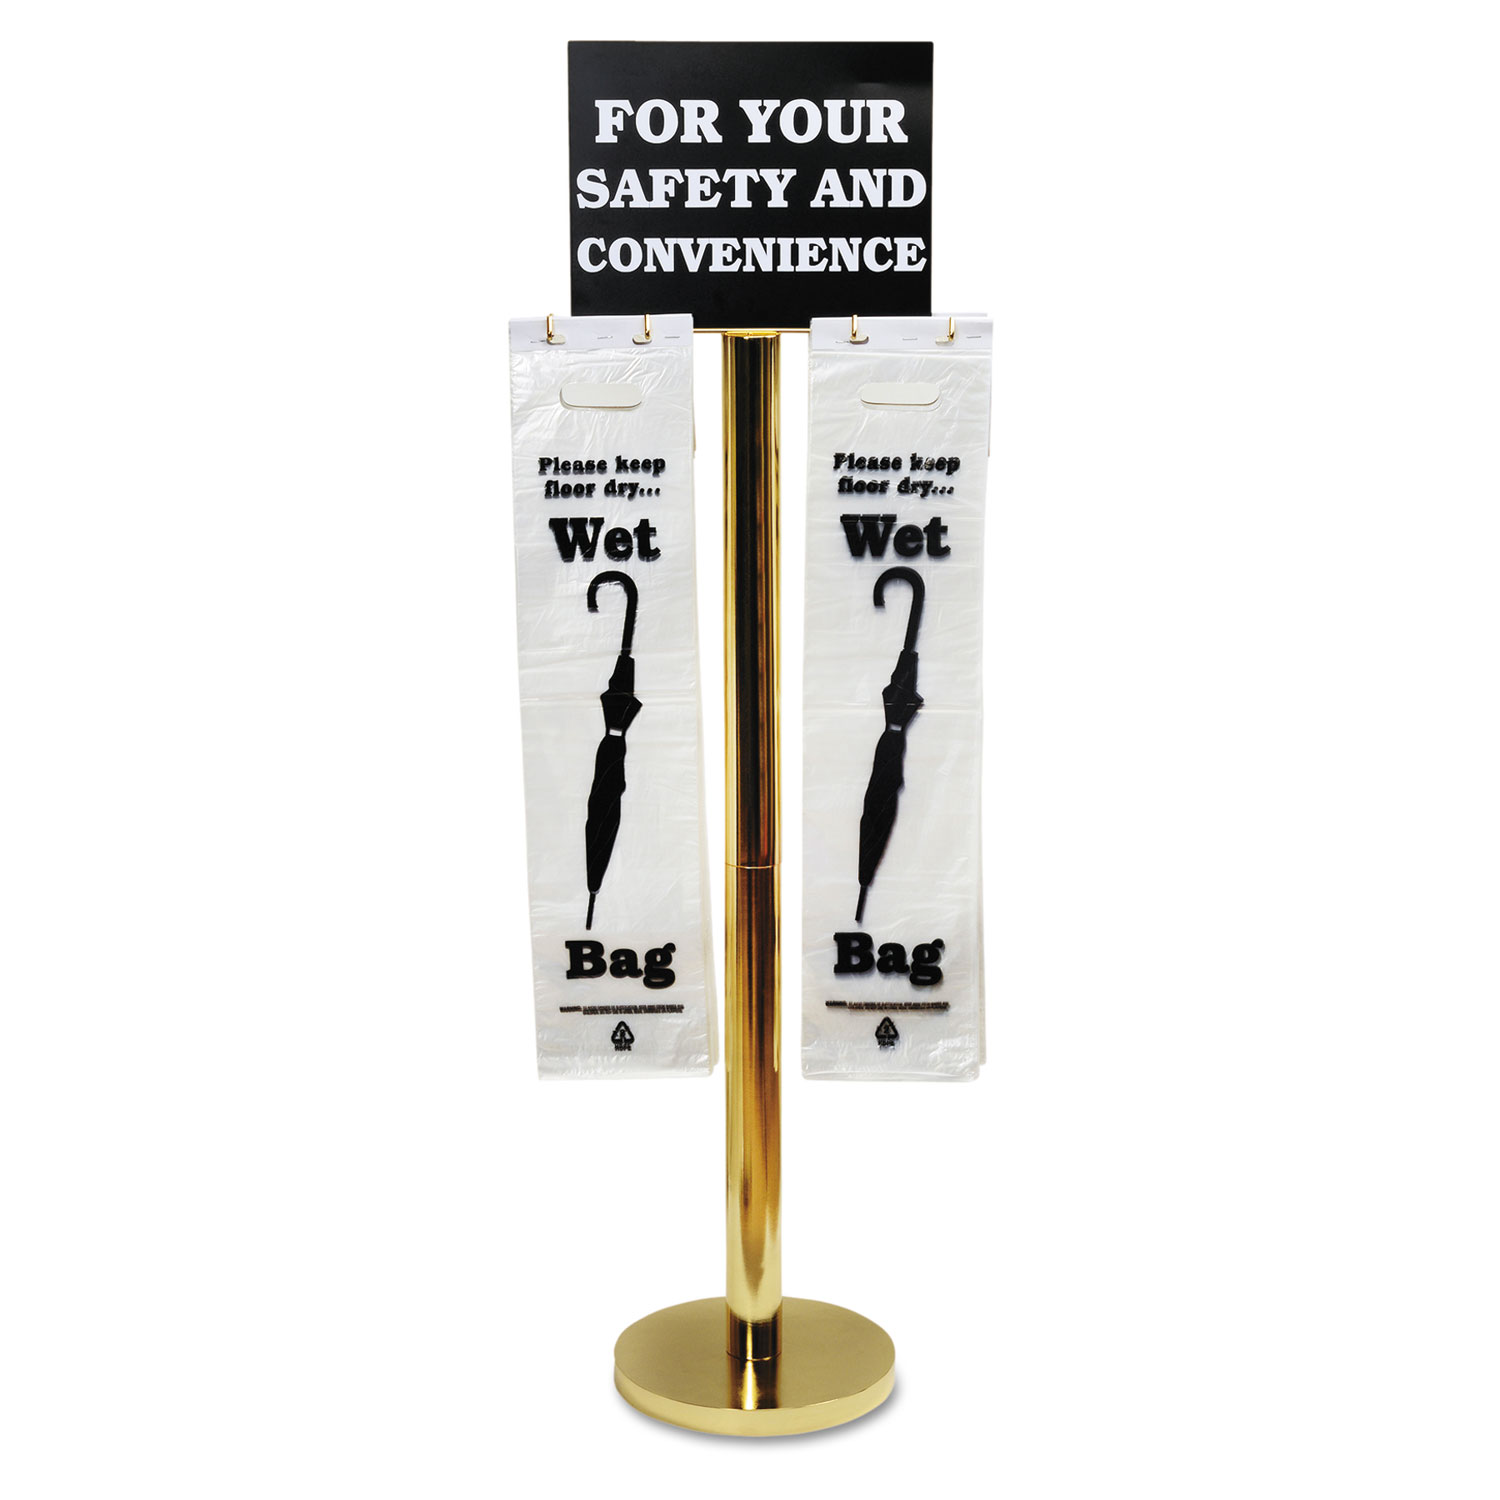 Wet Umbrella Bag Stand, 16w x 12d x 54.5h, Brass/Black/White